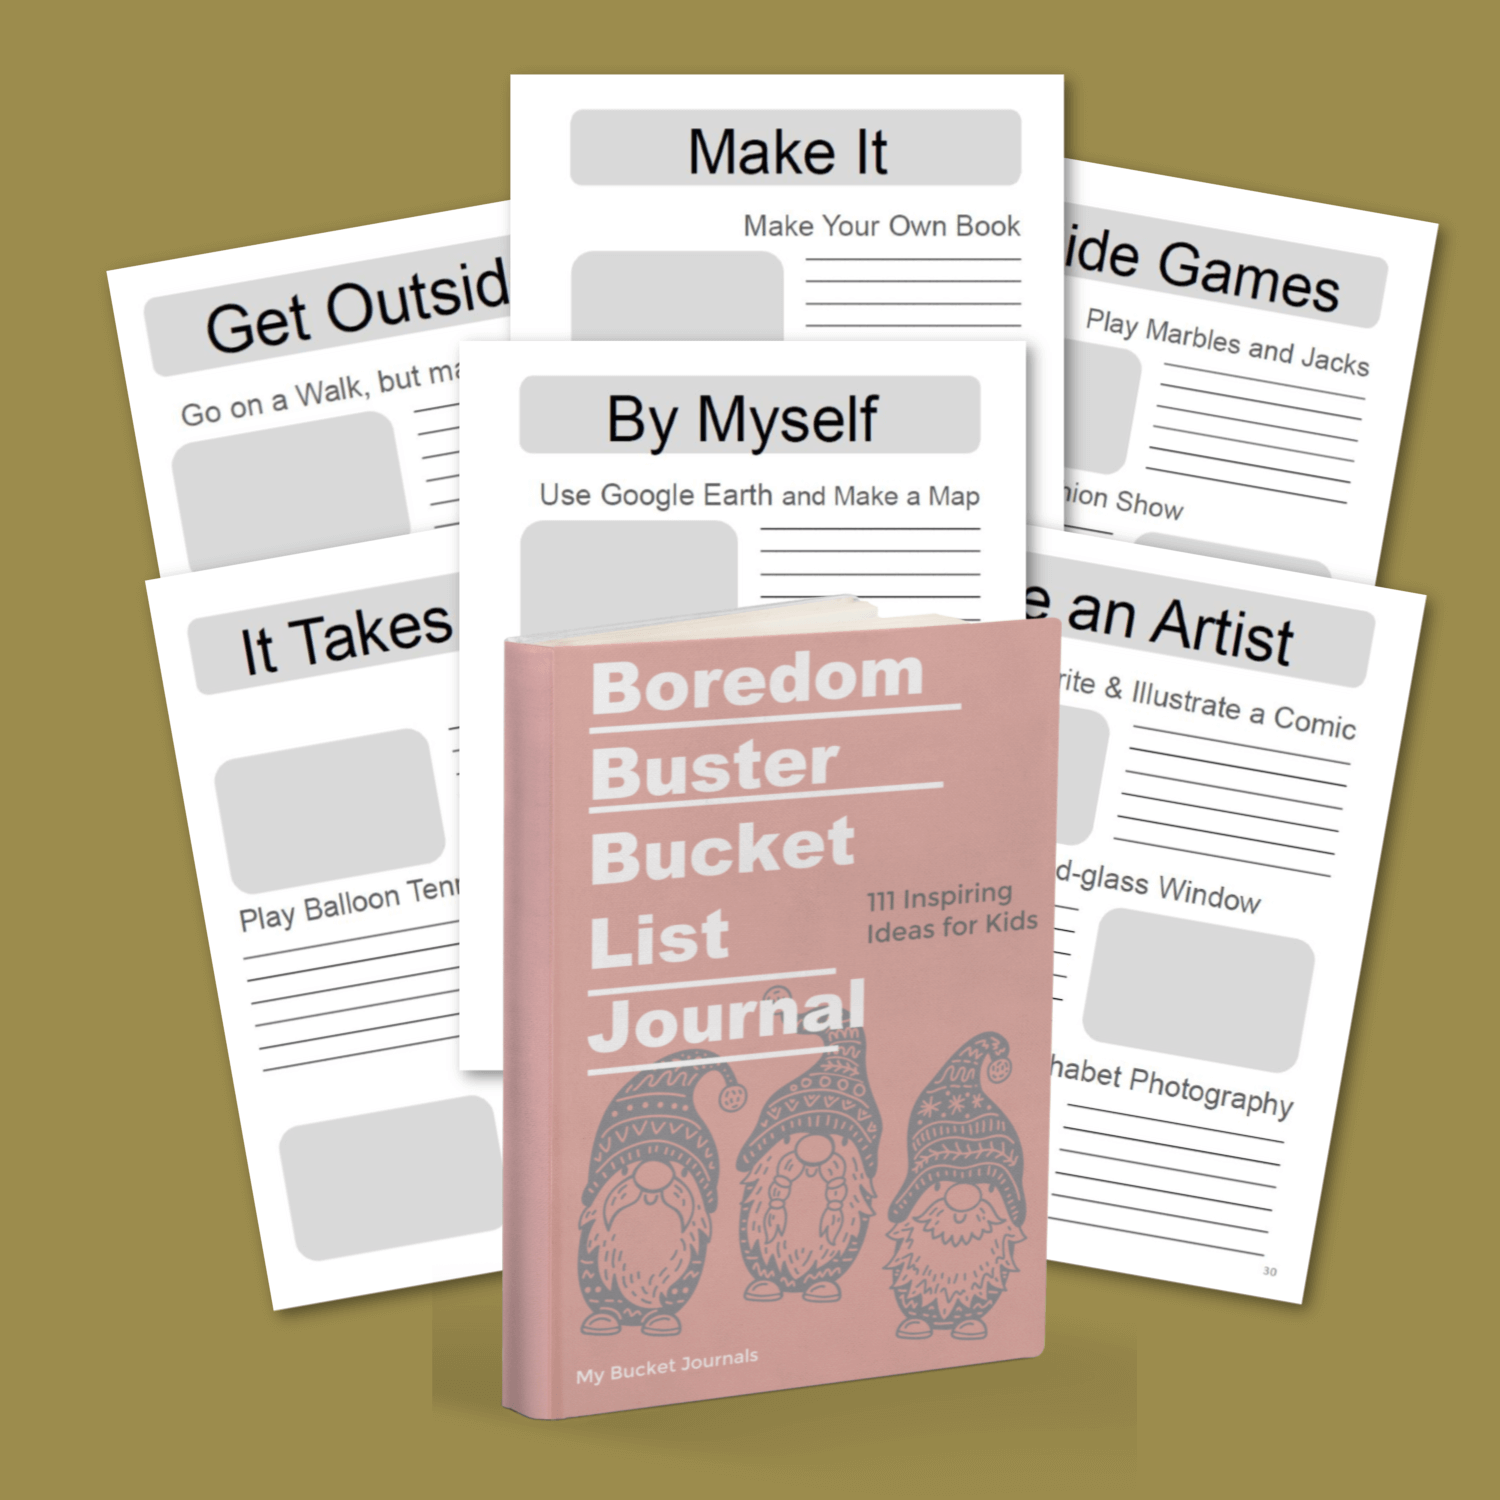 Boredom Buster Bucket List Journal for Kids